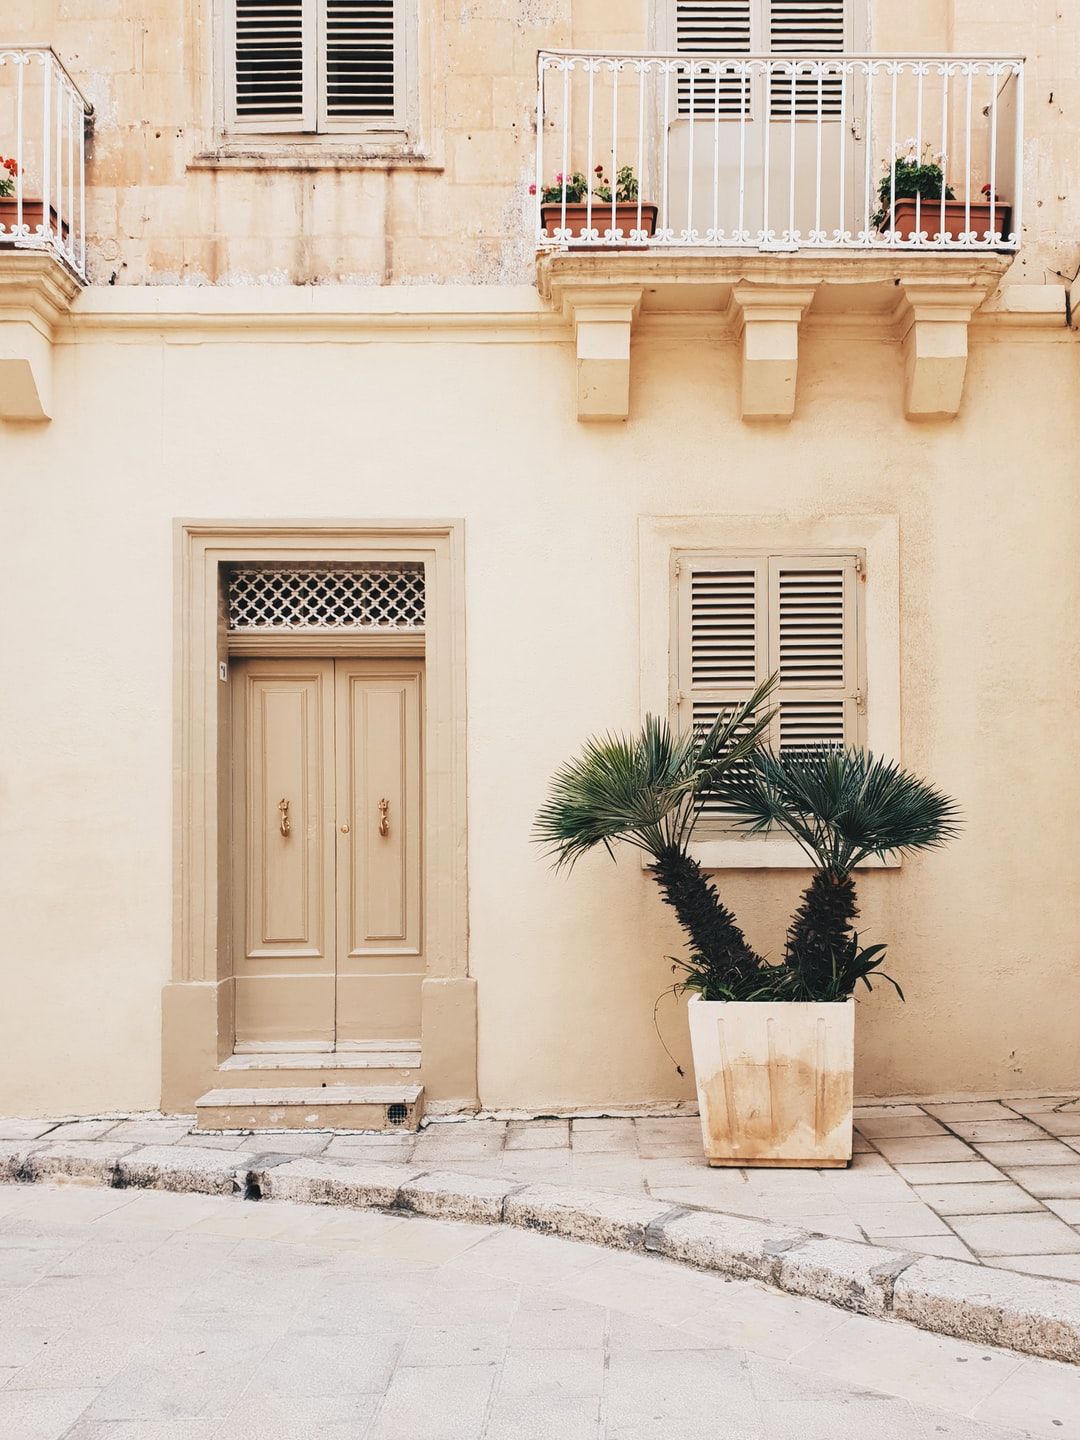 Probably the most beautiful town on Malta - Mdina, one of the movie locations of Game of Thrones.